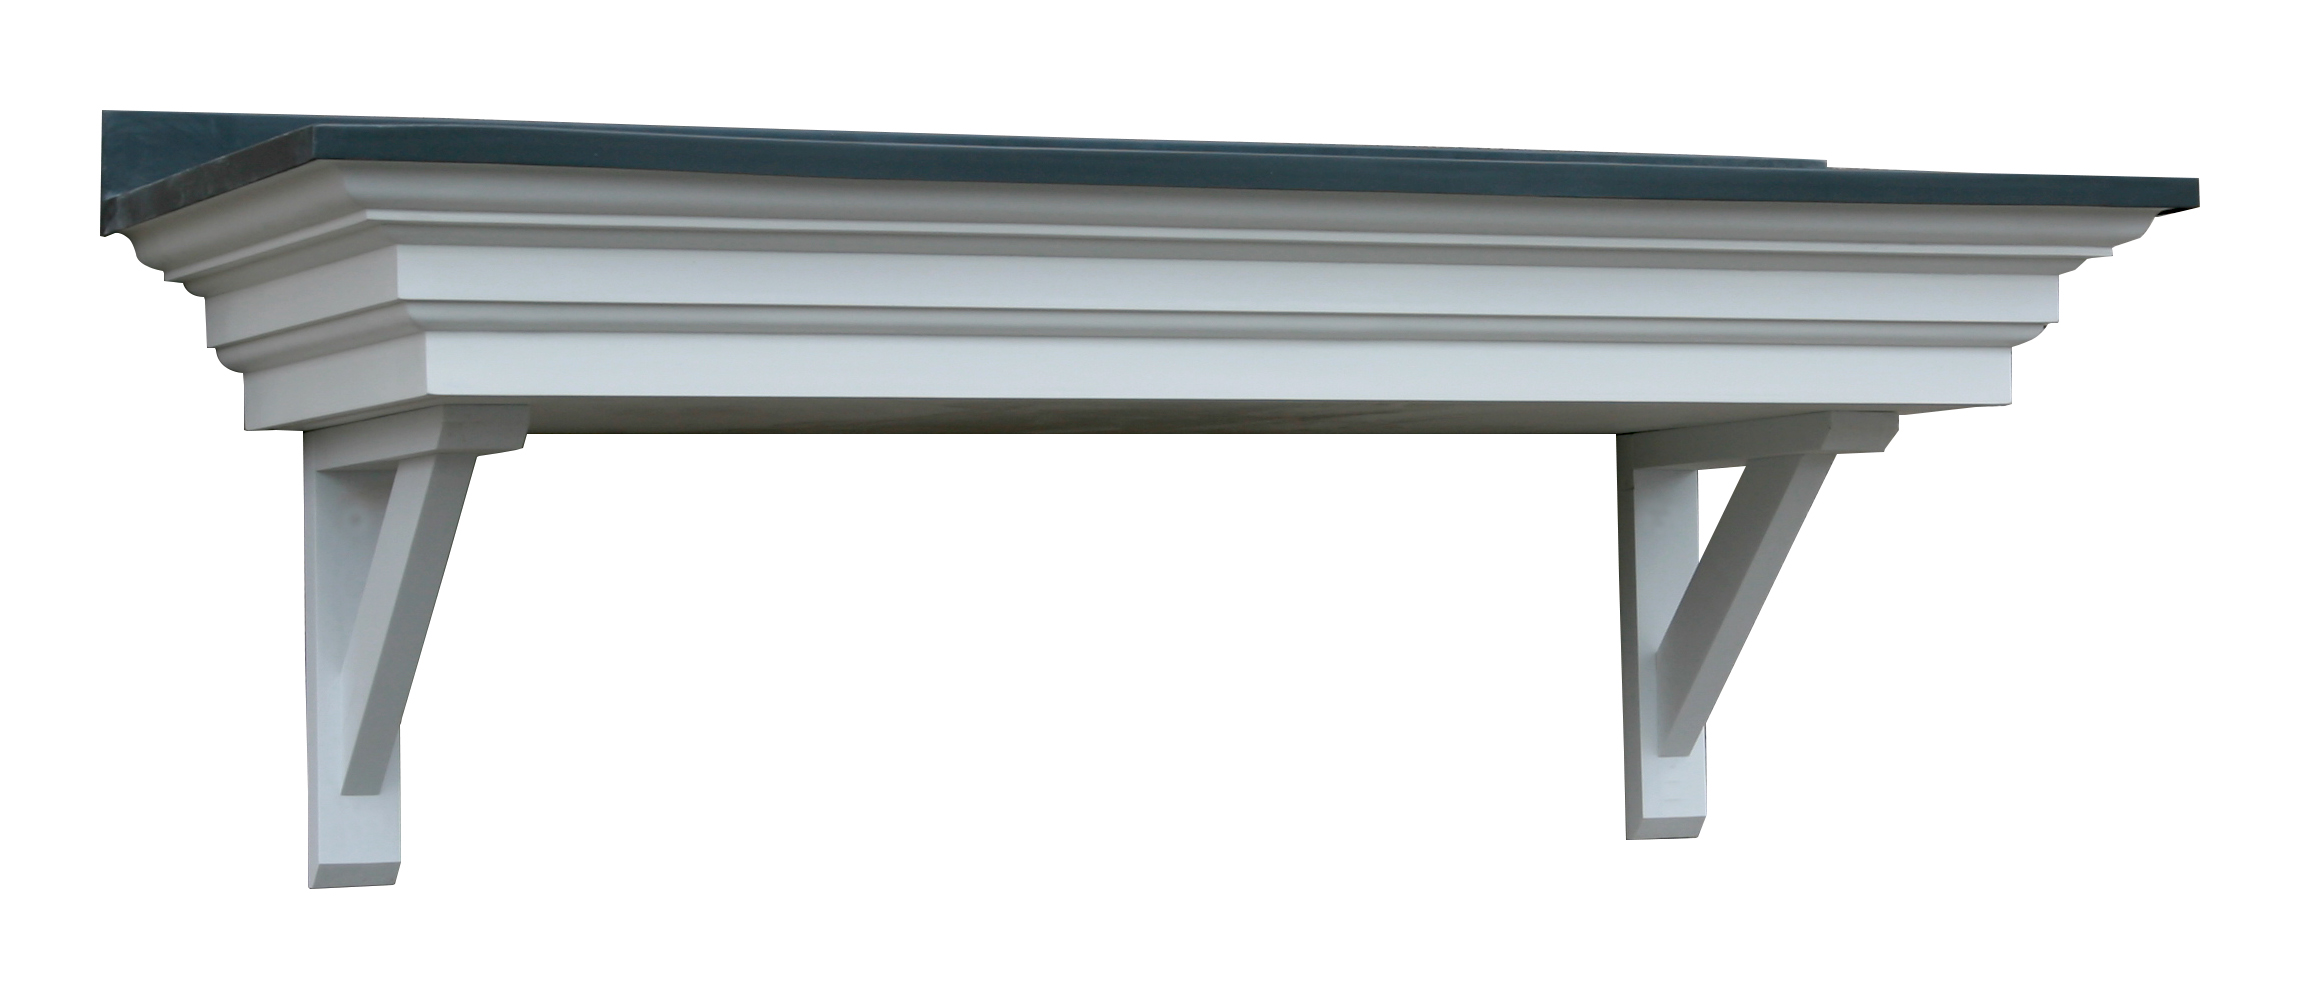 Haxton -  600 Series - 1620 Replica Lead  Roof Canopy